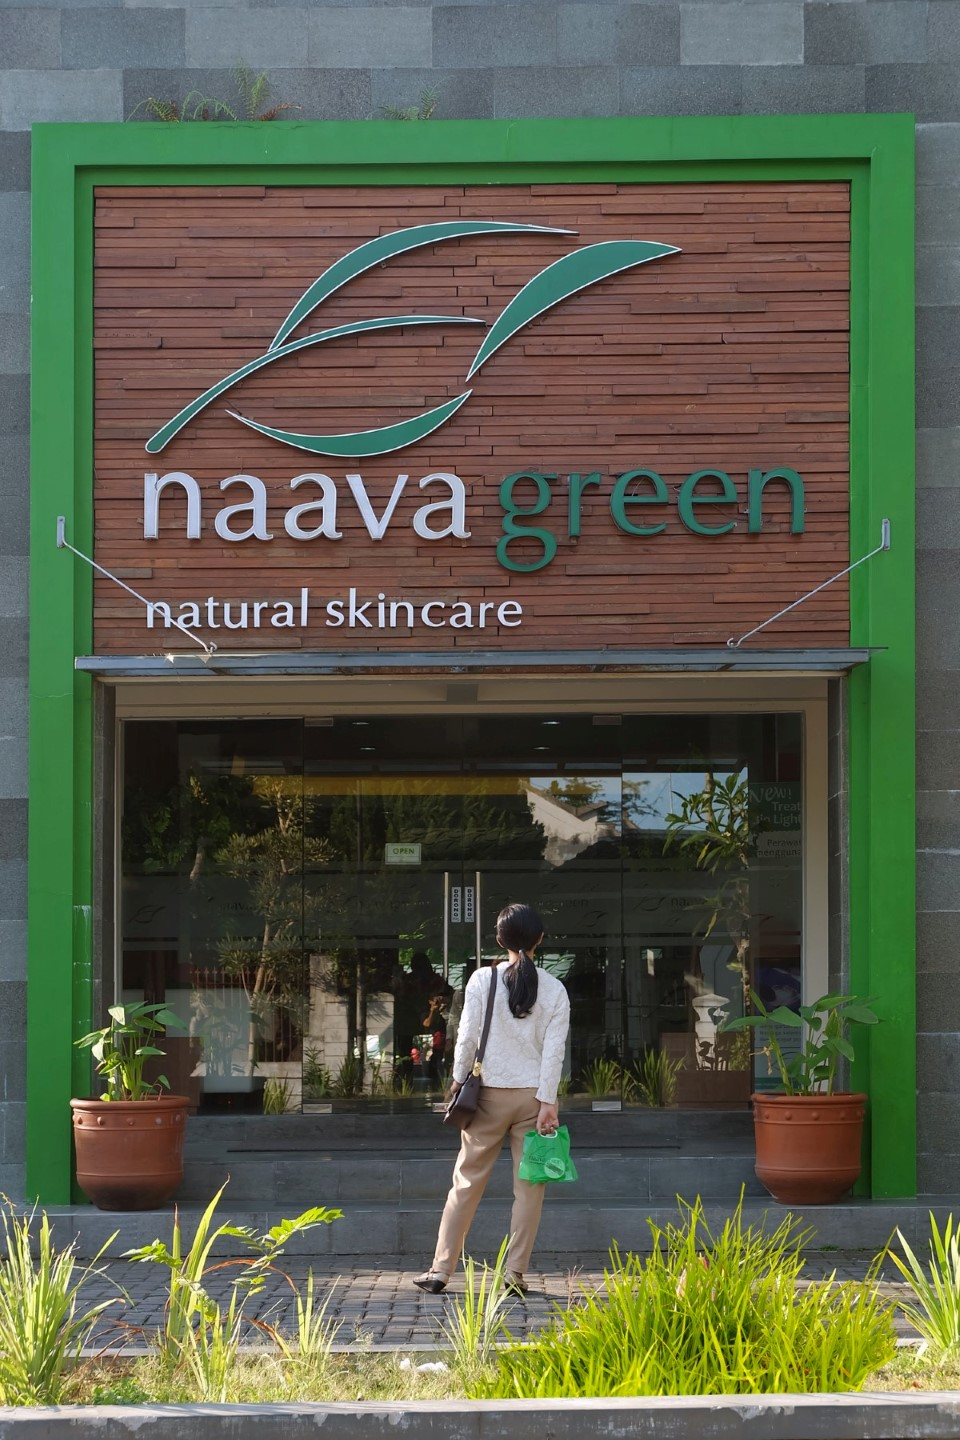 jam-buka-navagreen-facial-treatment-lulur-scrub-brightening-ajengmas